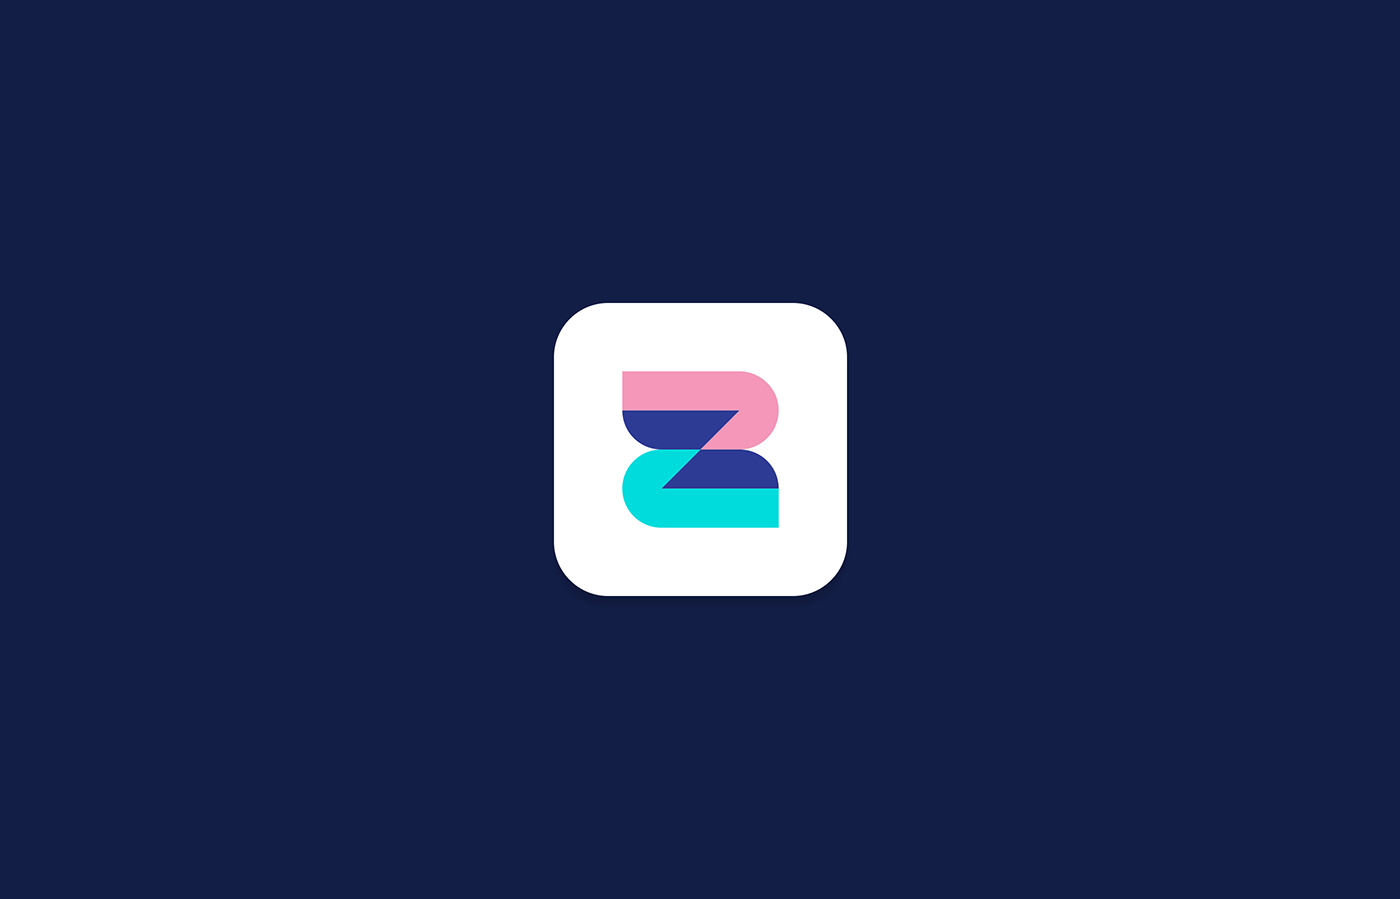 mobile app icon on bark navy screen, z letter icon on white background